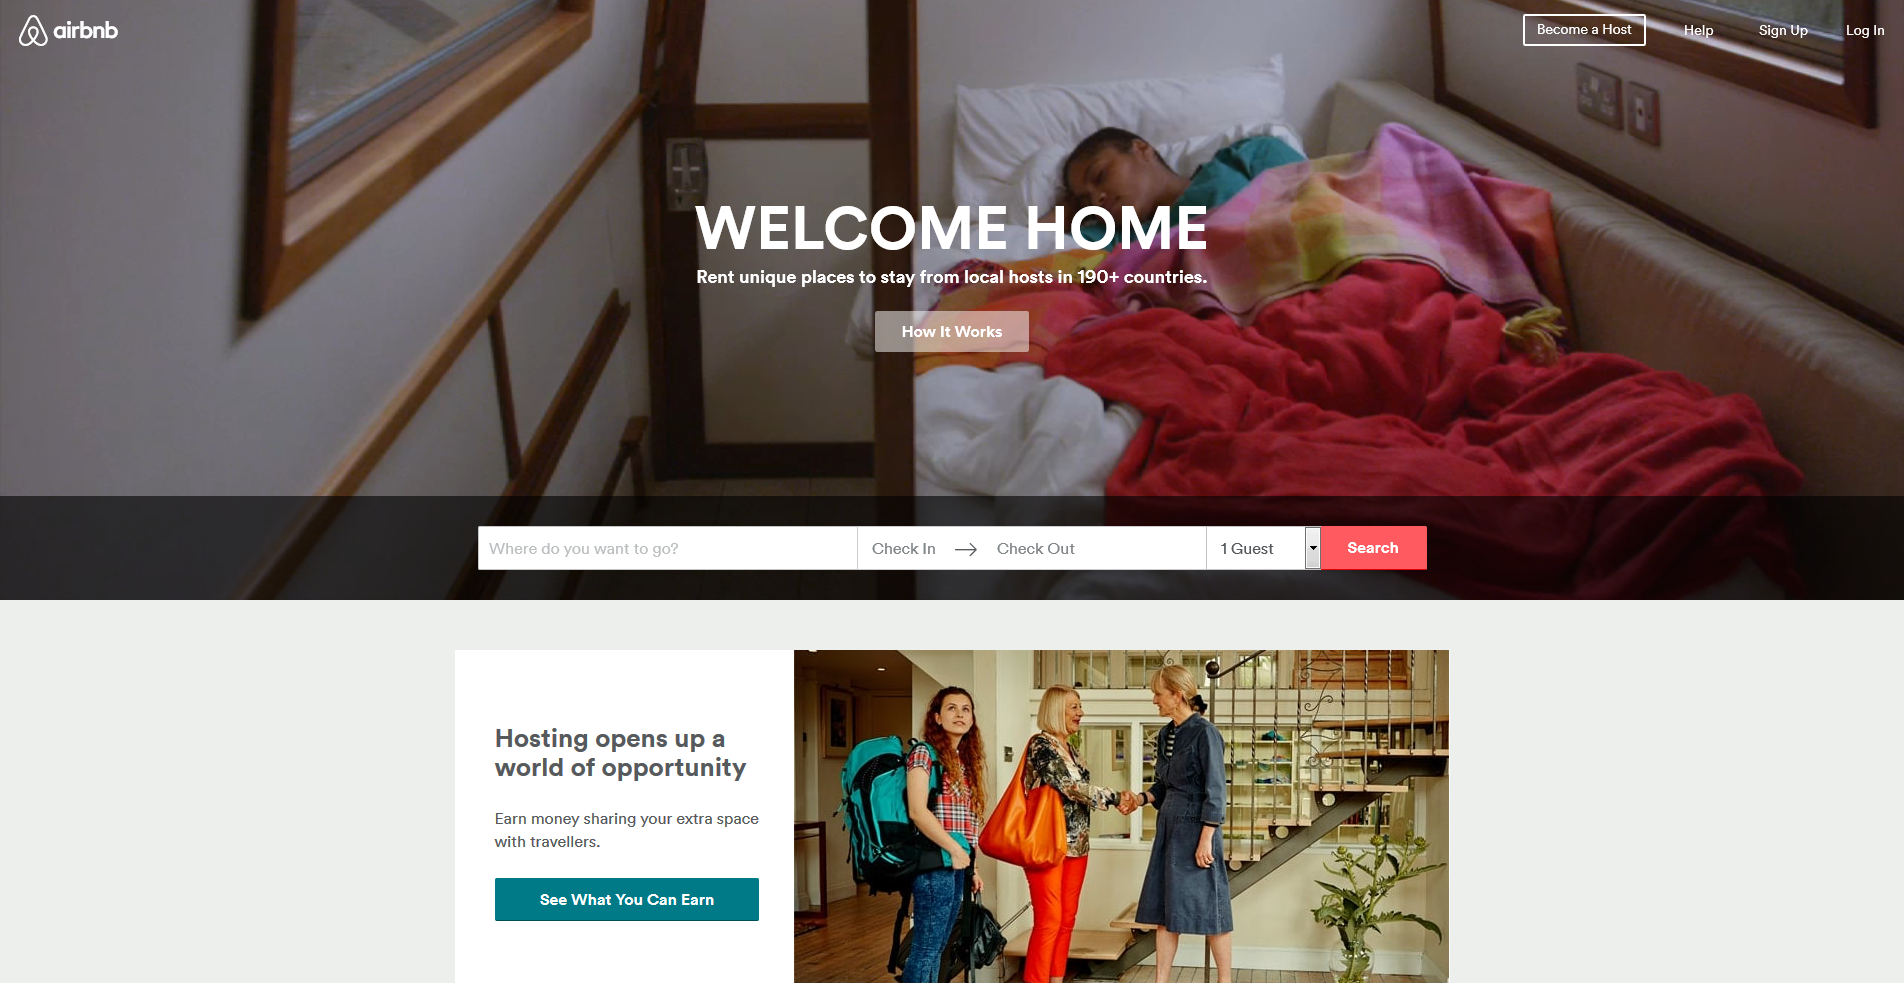 Vacation_Rentals_Homes_Apartments__Rooms_for_Rent_-_Airbnb_Canada_2015-10-28_15-01-48